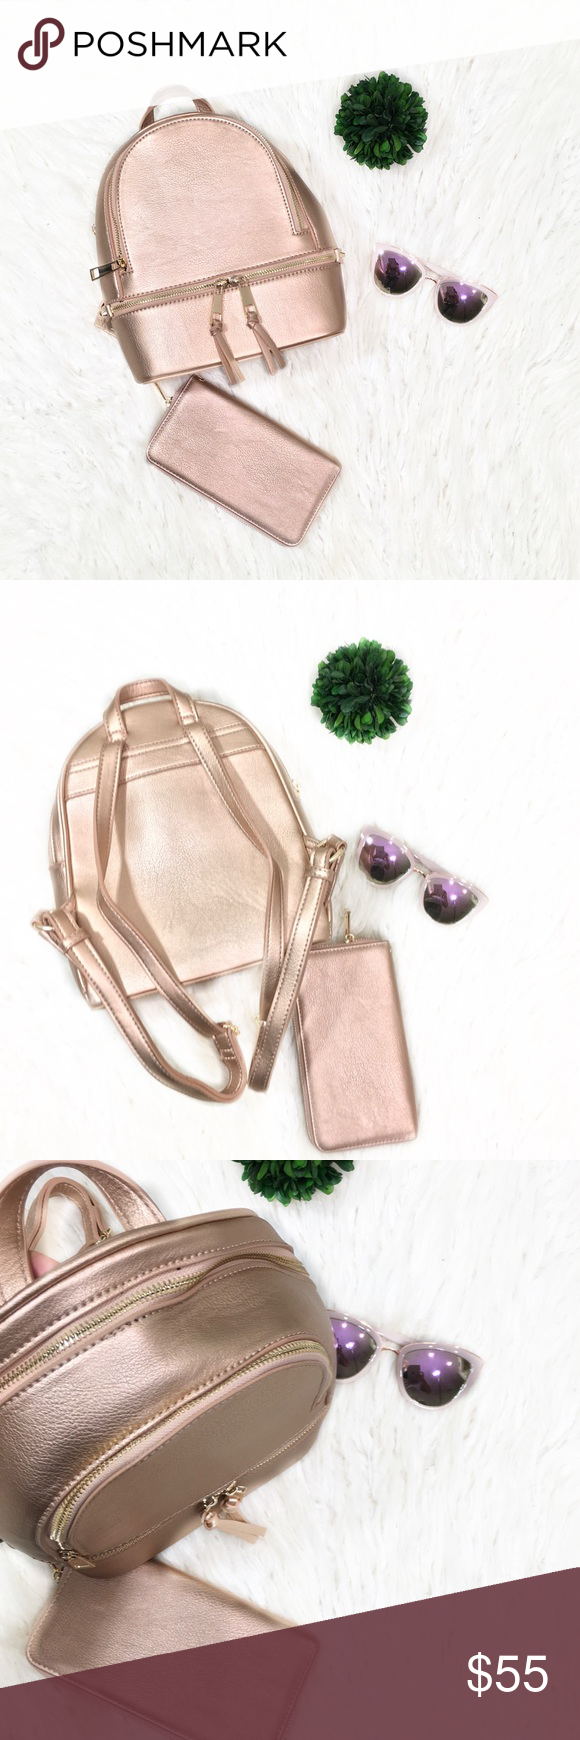 """""""Delilah"""" Rose Gold Backpack Smooth Textured PU Leather Matching Wallet Included! Adjustable Backpack Straps Zipper Top Closure Front Two Zipper Pockets Inside Zip Wall Pocket at Back Side Inside Double Open Wall Pocket at Front Side Soft Inside Lining 10.5(W) X 5(D) X 12(H) inch Bags Backpacks #zippertop"""